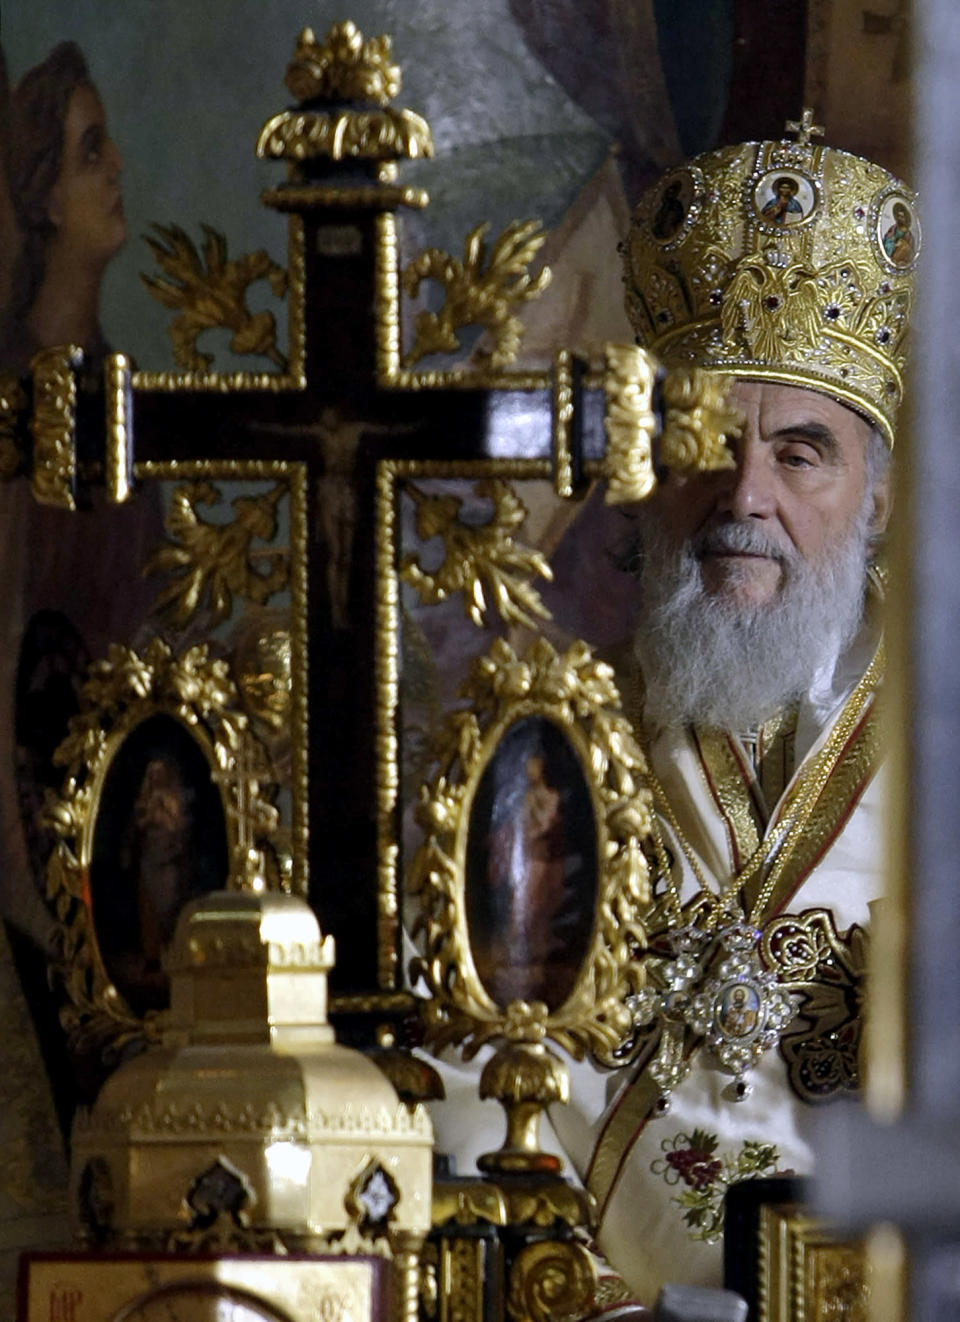 FILE - In this Jan. 23, 2010, file photo, Patriarch Irinej attends the ceremony liturgy in Belgrade's Congregational church, Serbia. Serbia's Orthodox Church said Friday, Nov. 20, 2020, the leader, Patriarch Irinej, has died after testing positive for the coronavirus. He was 90. (AP Photo/Darko Vojinovic, File)